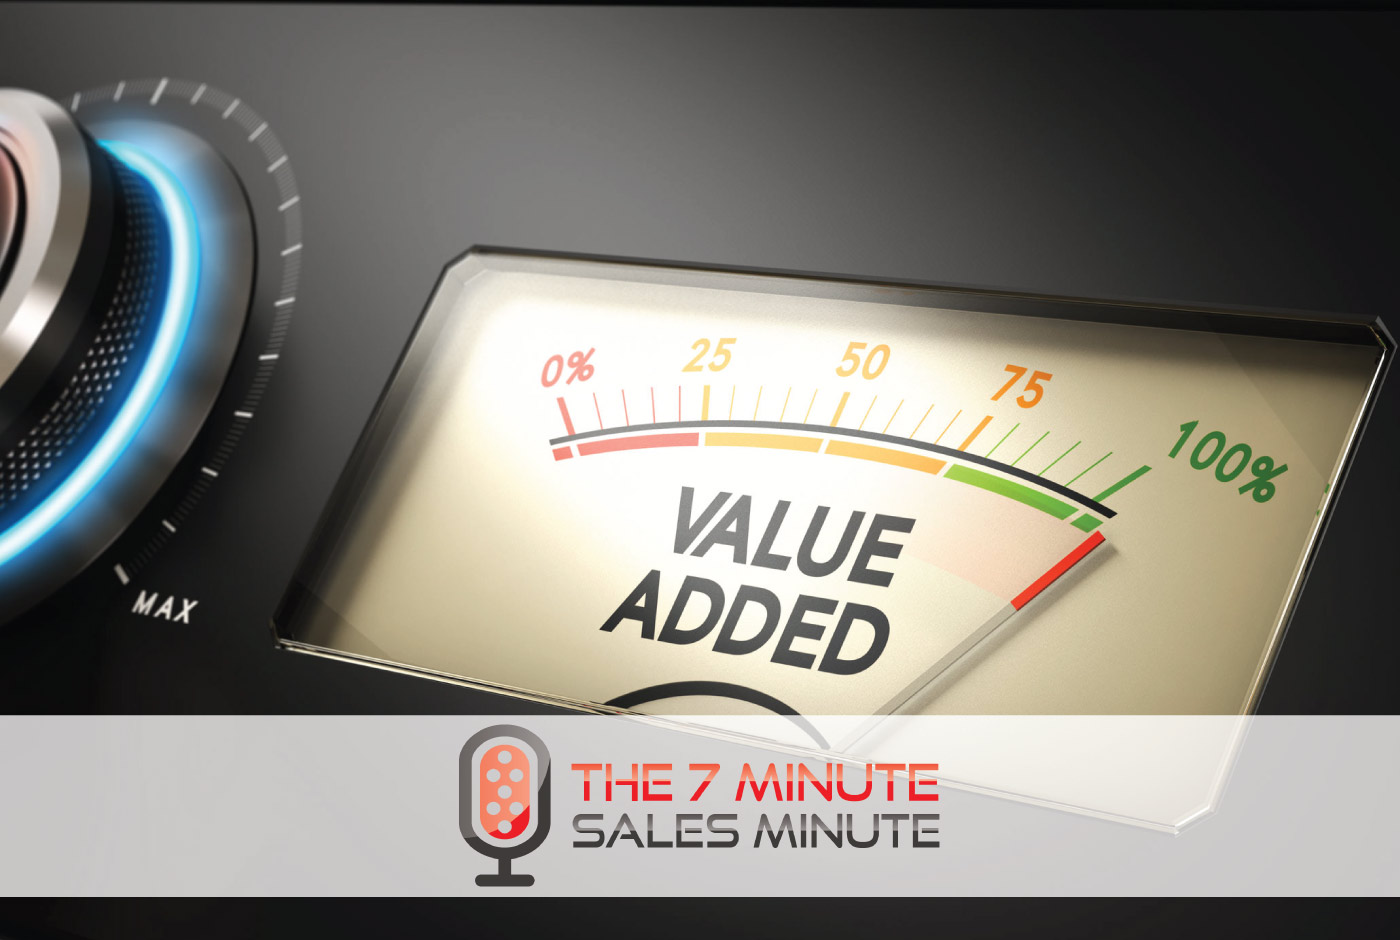 7 Minute Sales Minute Podcast - Season 12 - Episode 4 - Features With Benefits